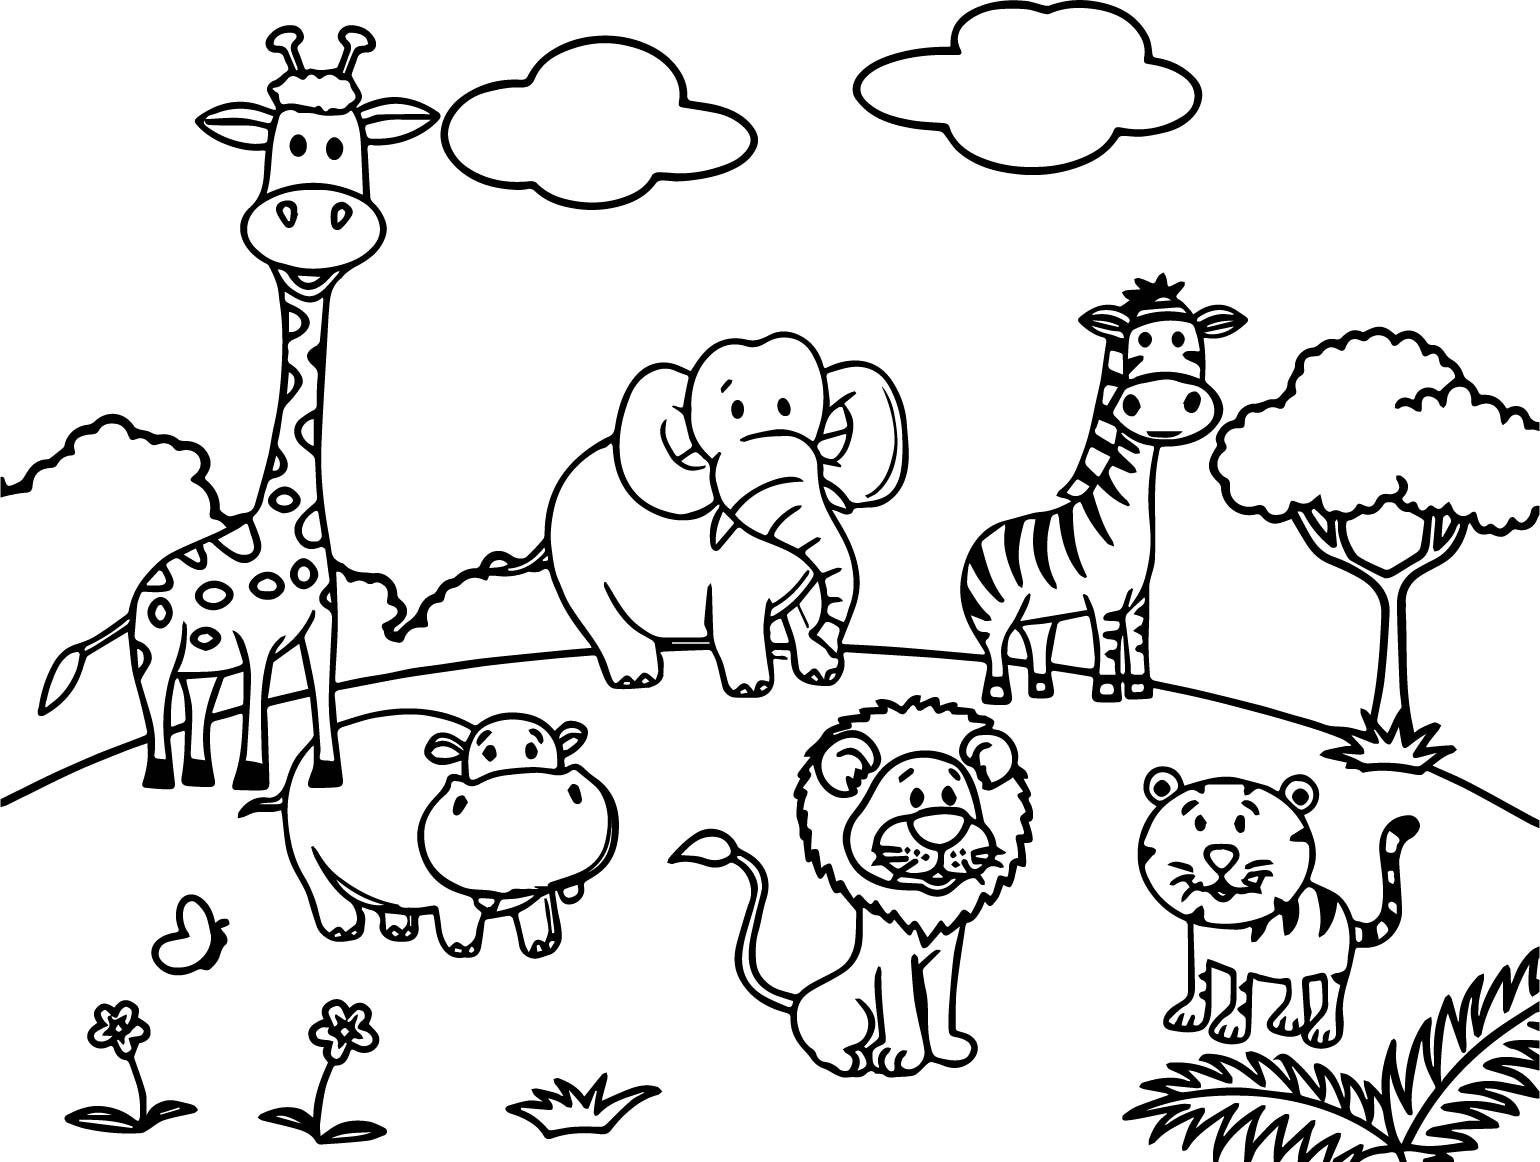 zoo coloring pictures for preschool preschool zoo animals coloring pages hobbies creativity preschool coloring pictures zoo for